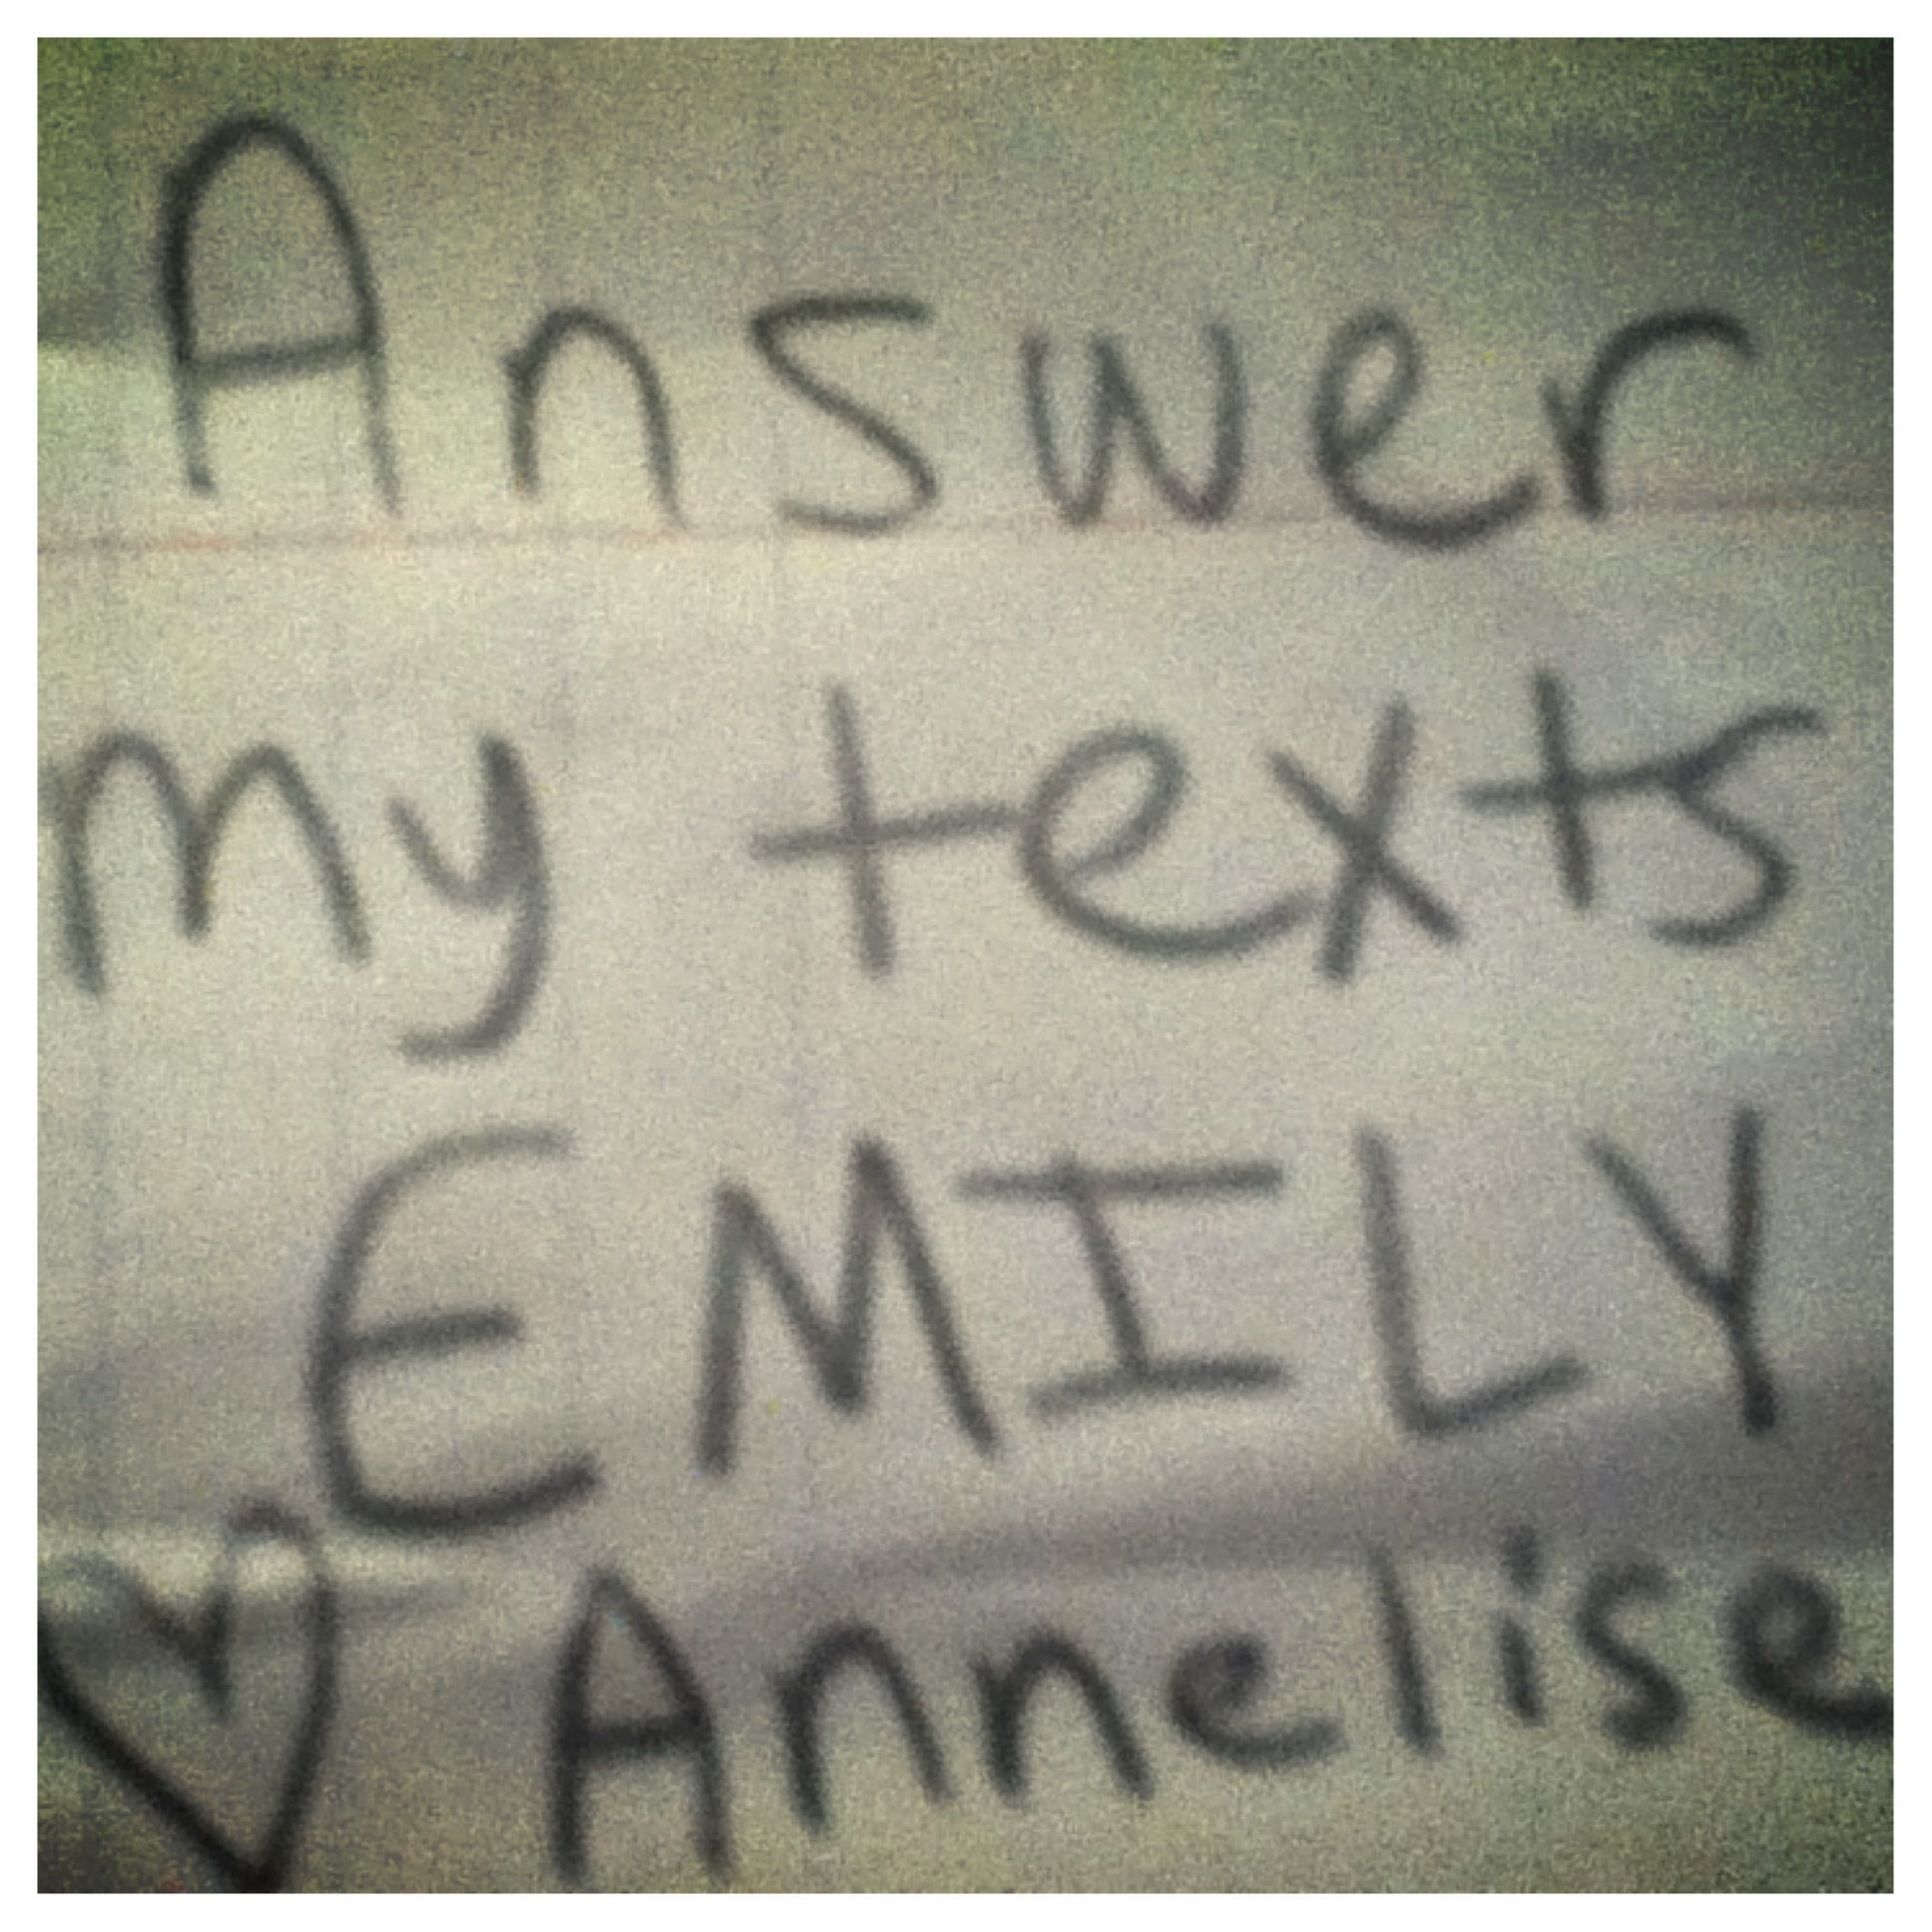 EMILY this is for you.